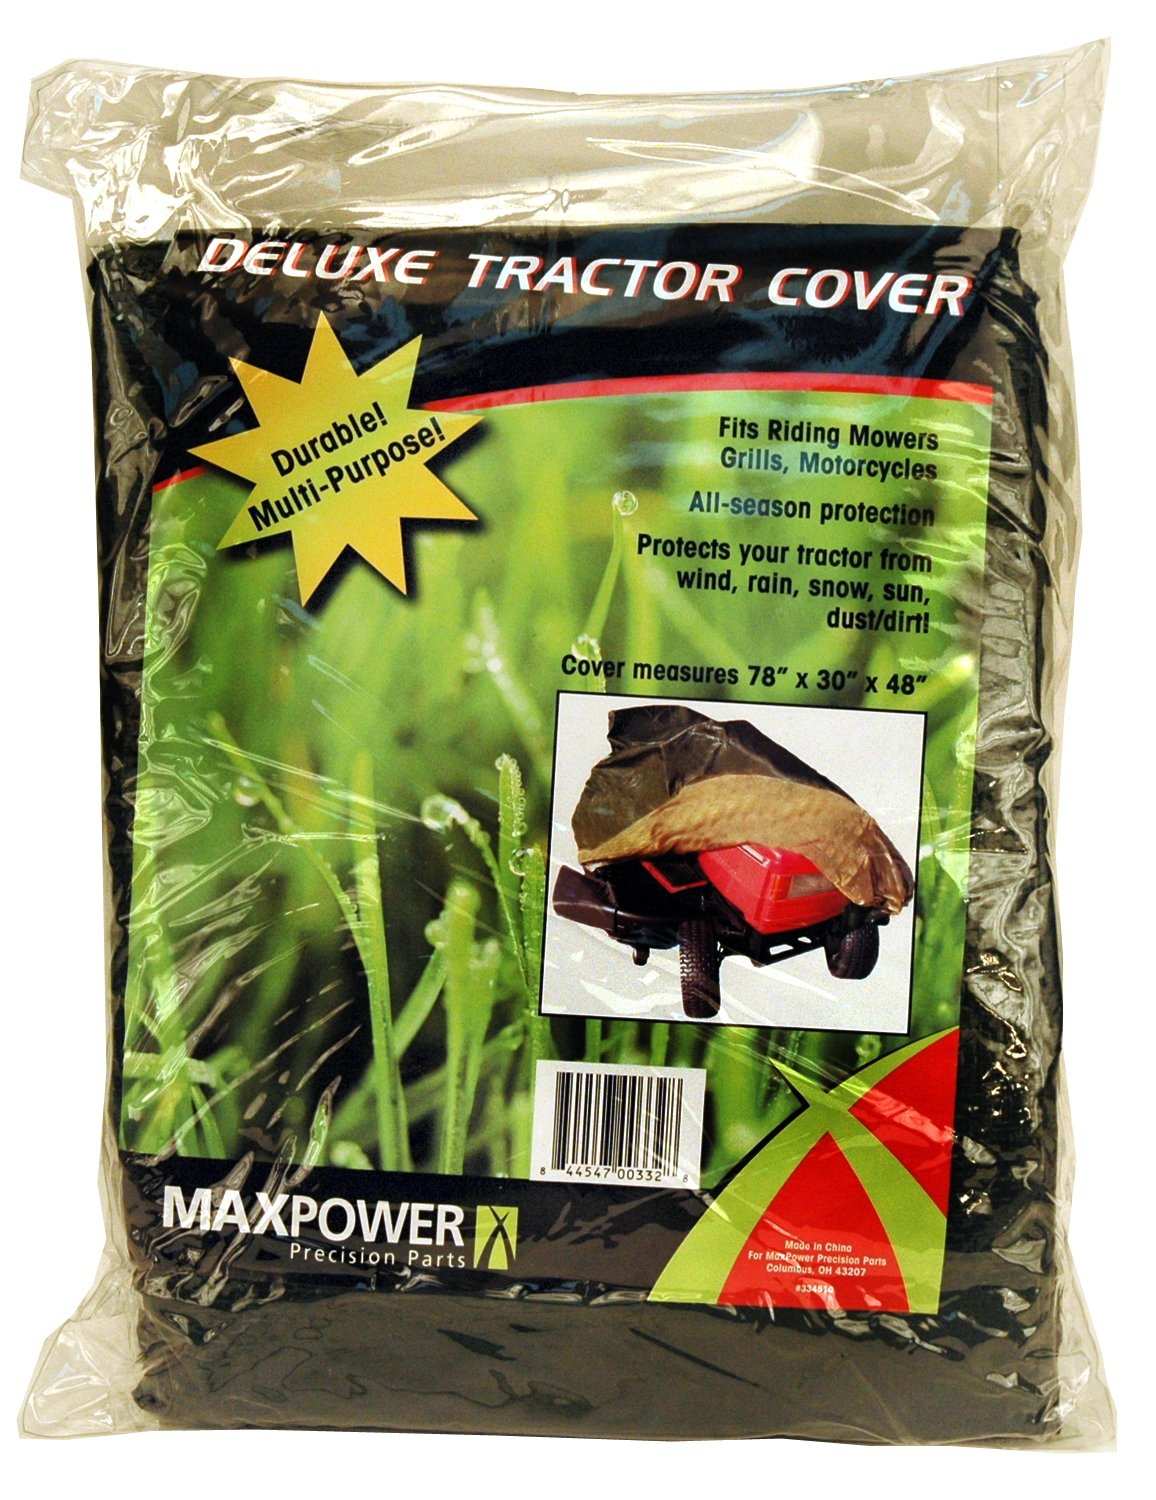 Maxpower 334510 Deluxe Riding Lawn Mower Cover Maxpower Precision Parts